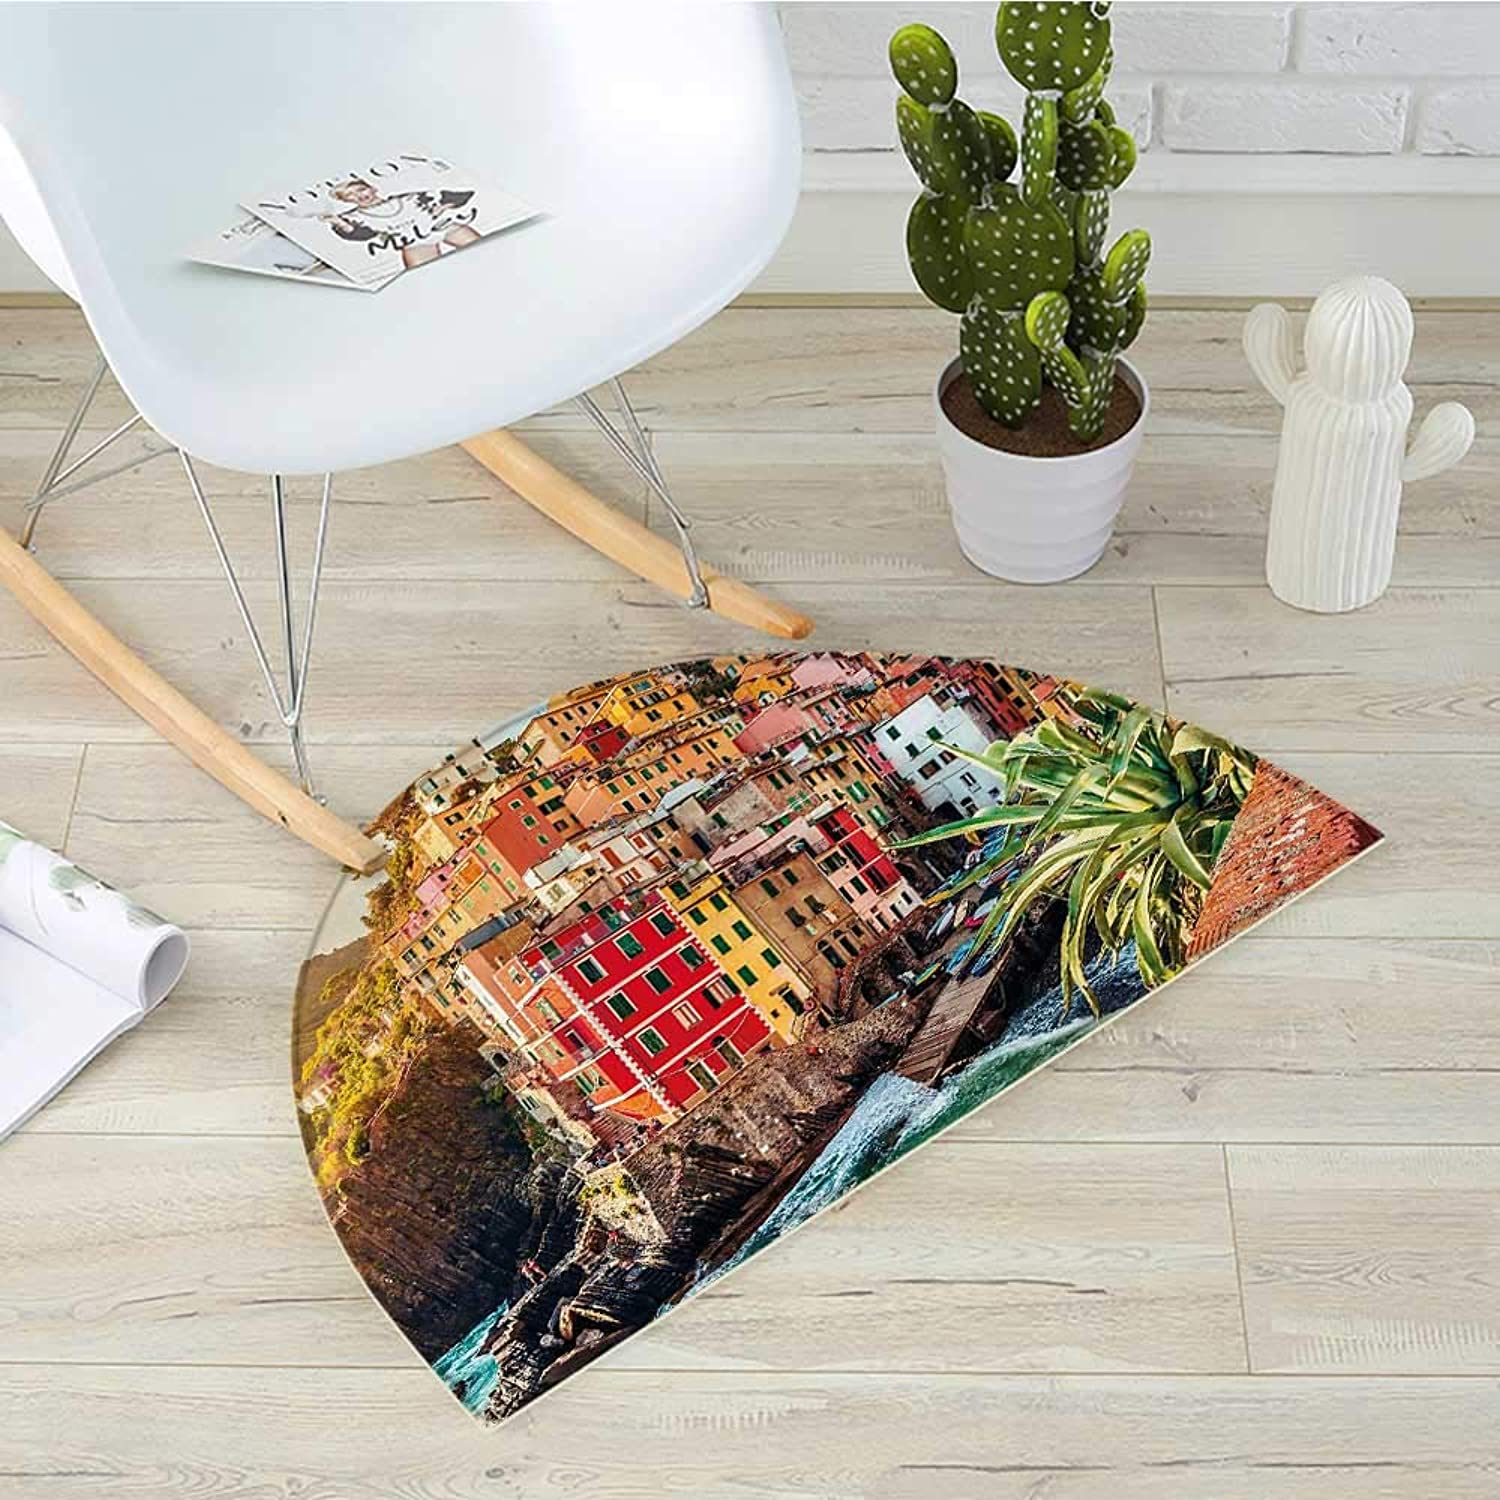 Semicircular CushionRiomaggiore at Sunset Cinque Terre National Park Cliff and Coast Scenic Panorama Entry Door Mat H 43.3  xD 64.9  Multicolor